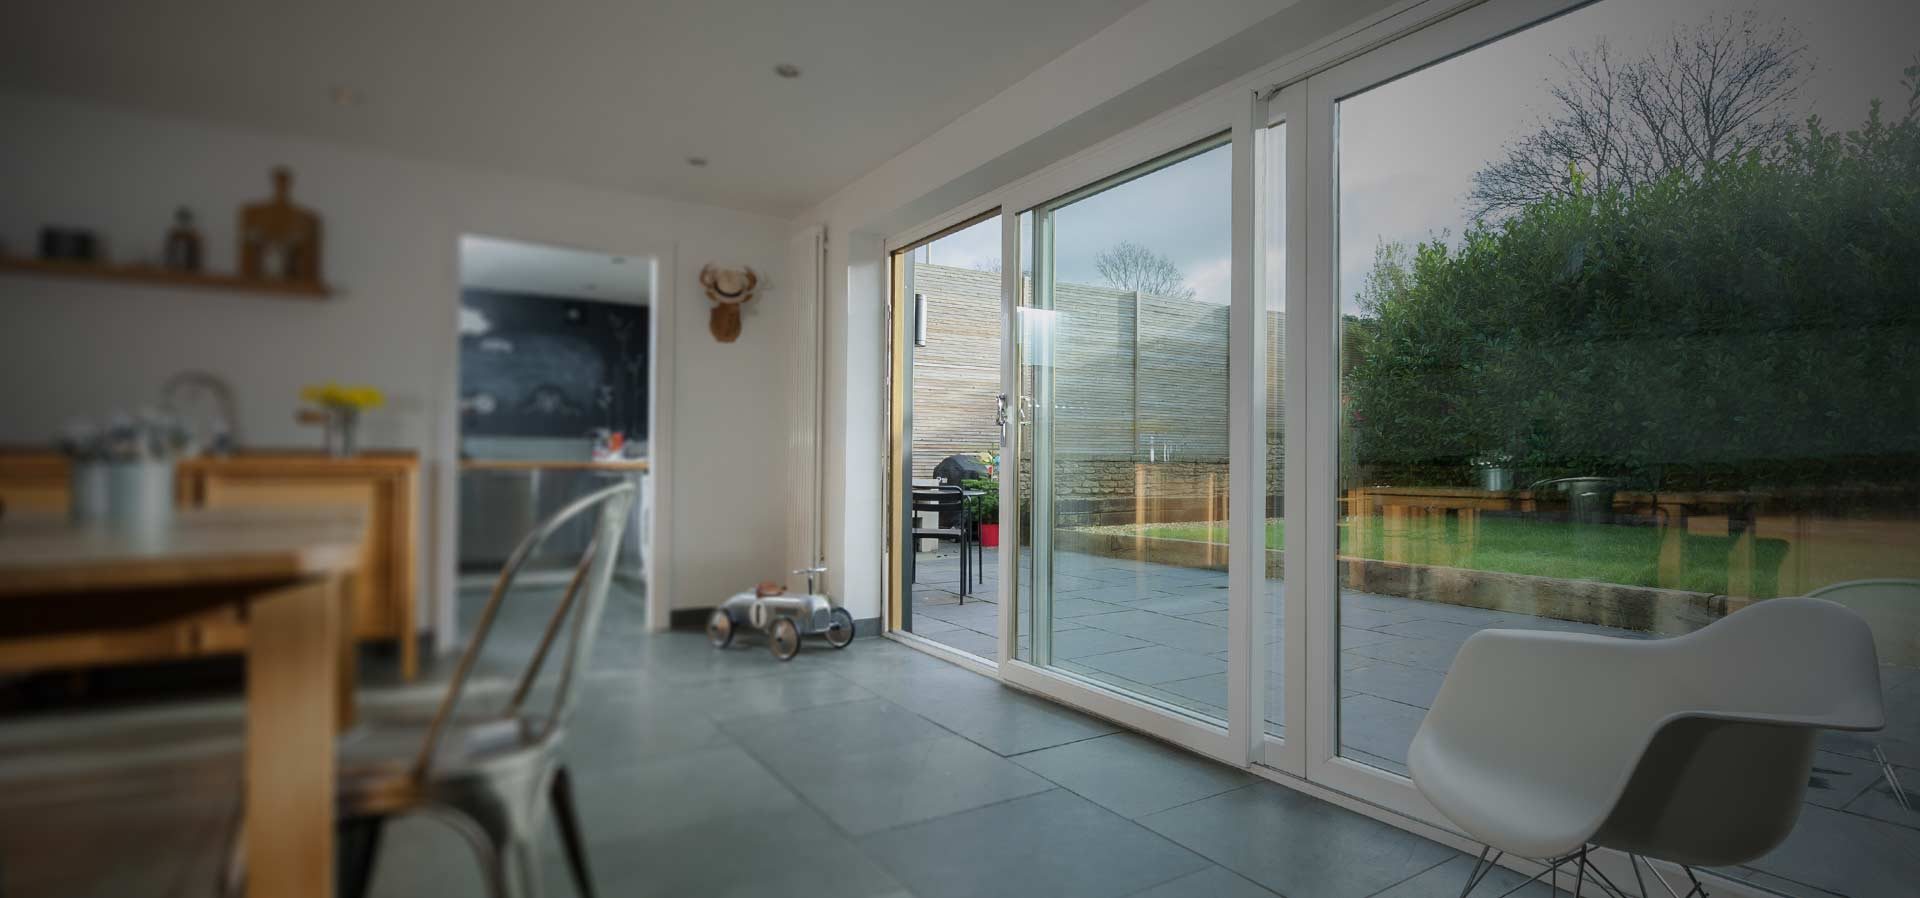 uPVC sliding patio door manufactured using the Deceuninck Slider24 window profile